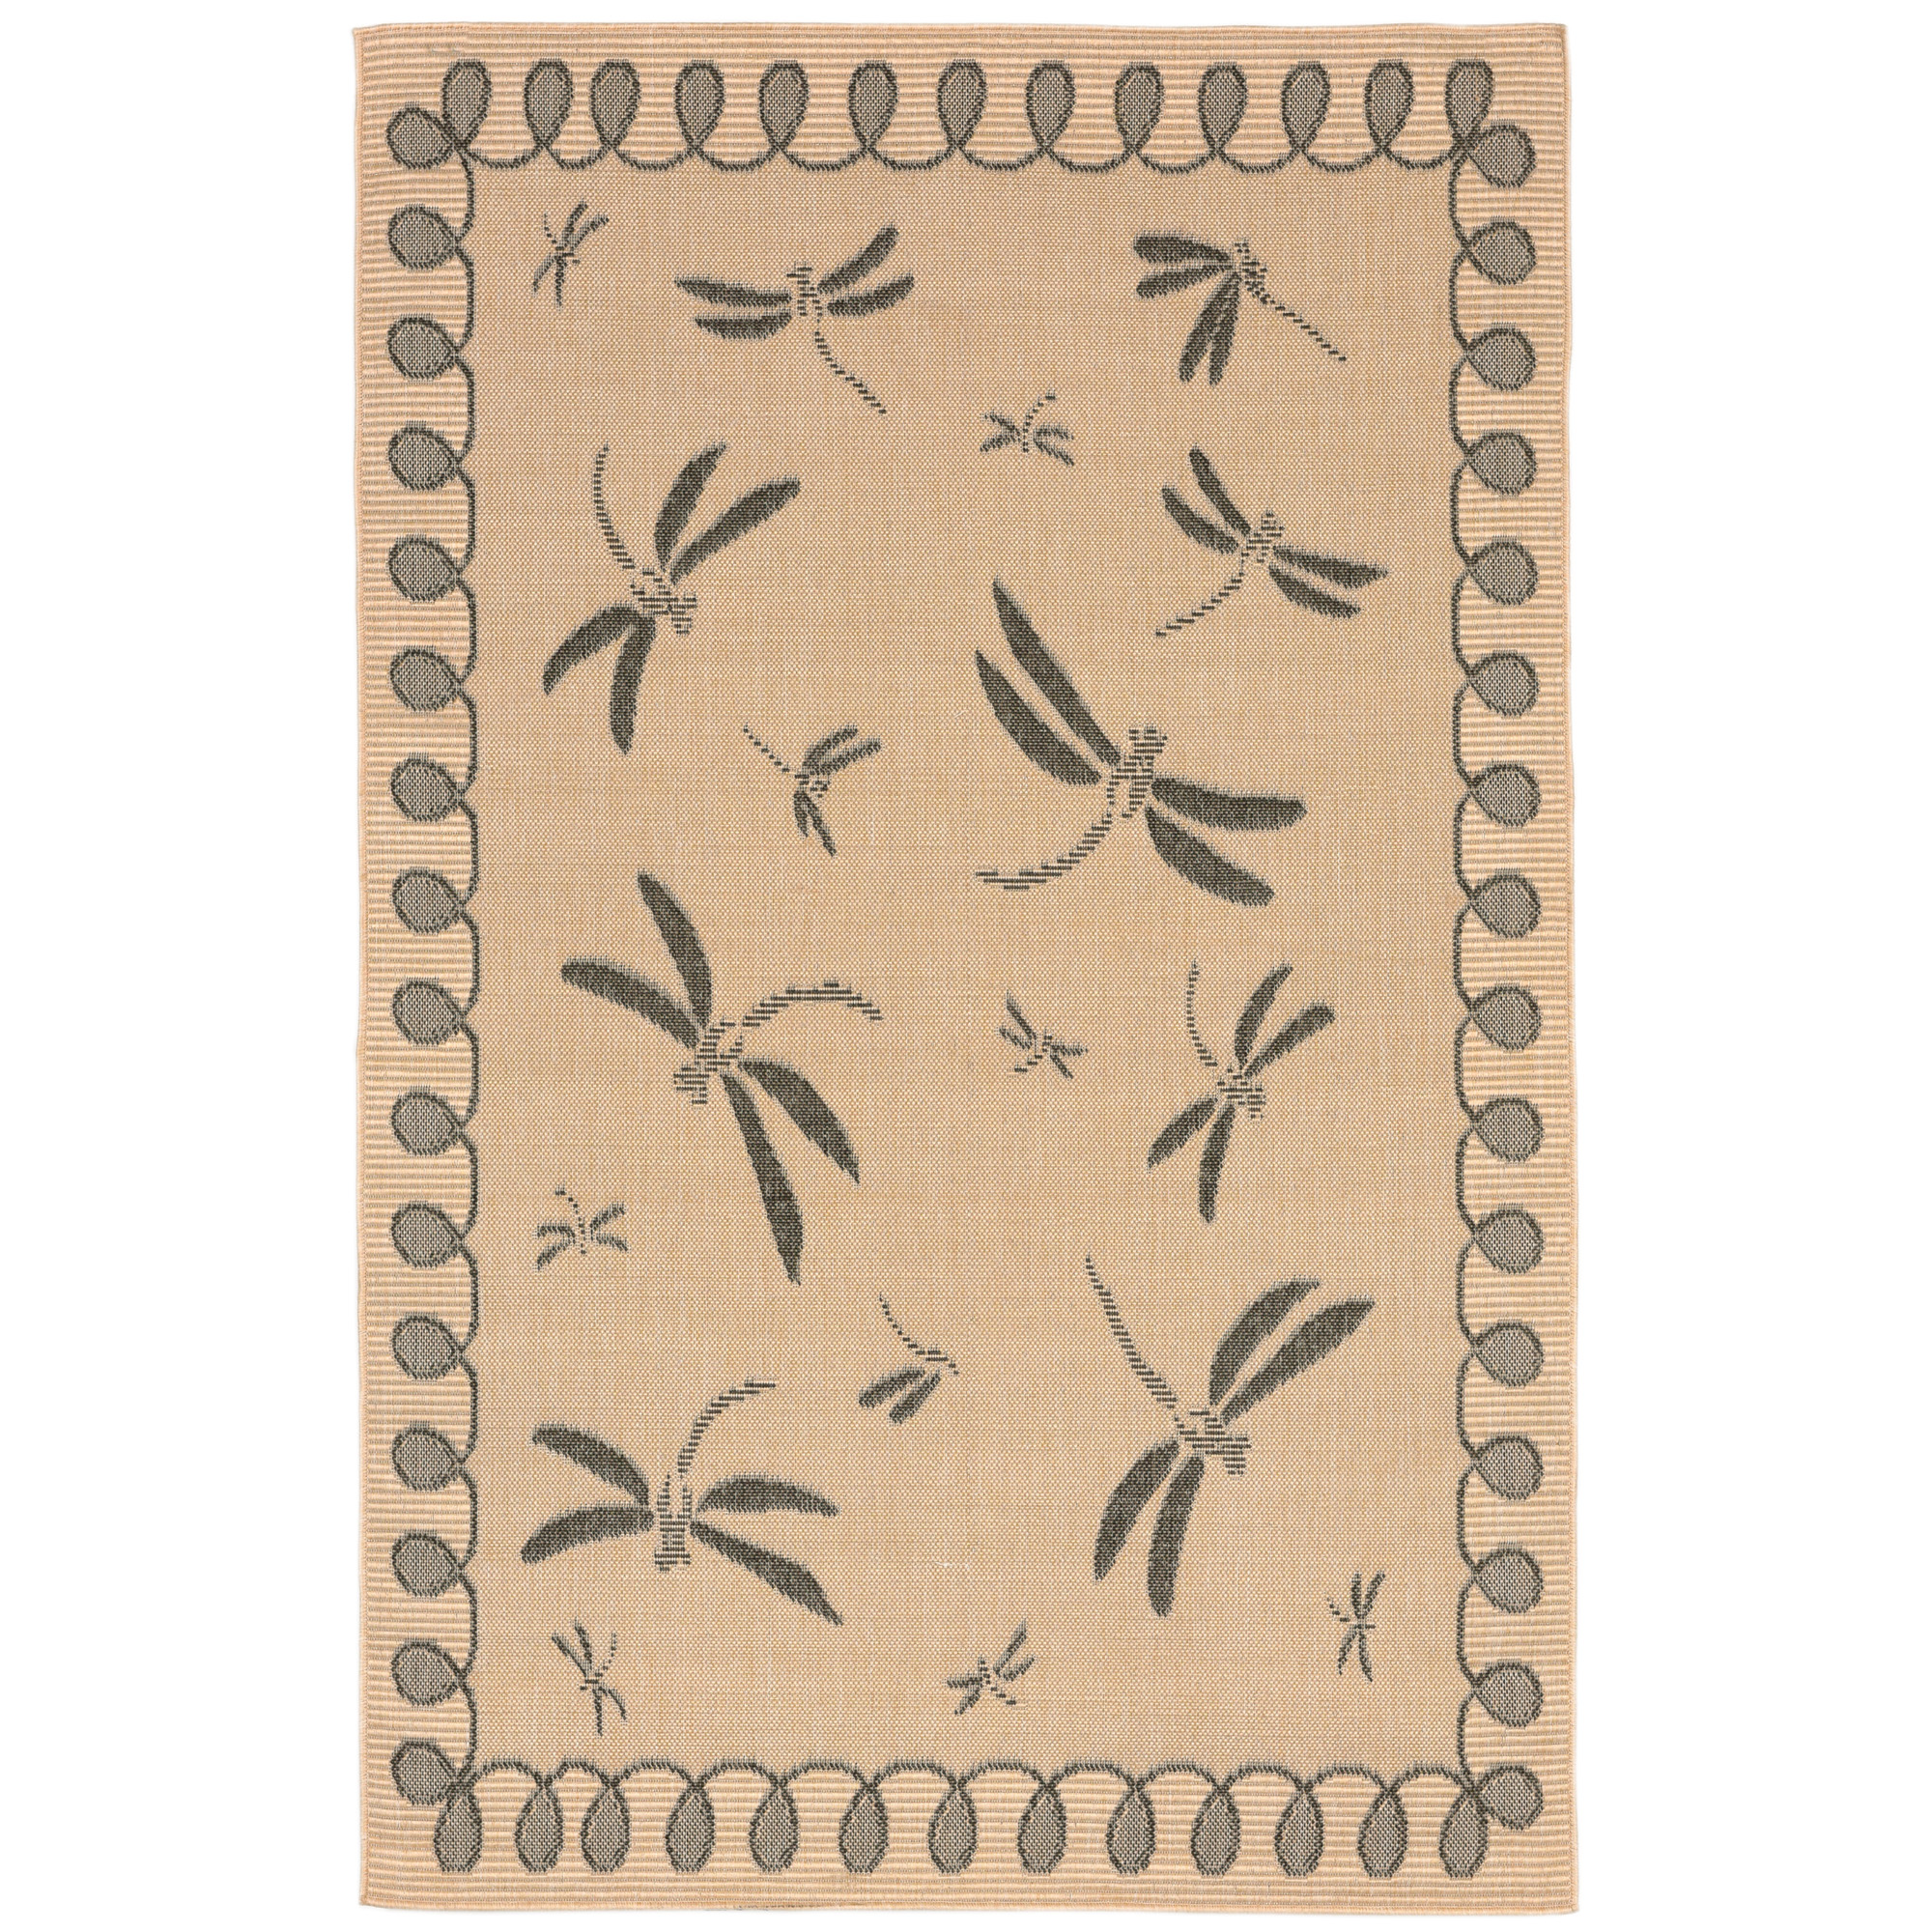 Liora Manne Terrace 1791/67 Dragonfly Neutral Area Rug 4 Feet 10 Inches X 7 Feet 6 Inches